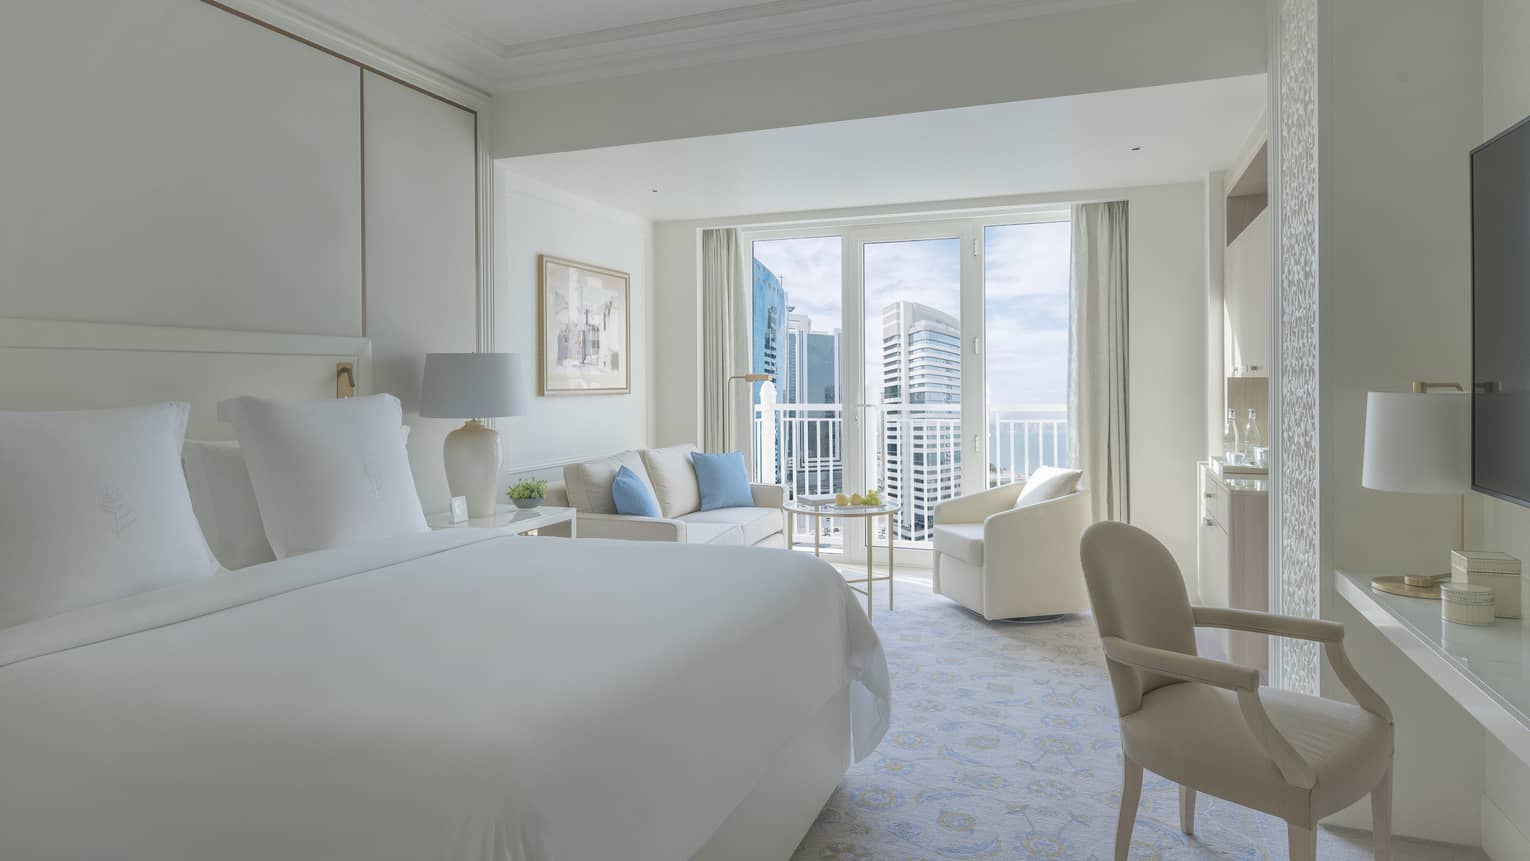 Bedroom with white bed, white walls and a white sofa and arm chair, with balcony offering city view